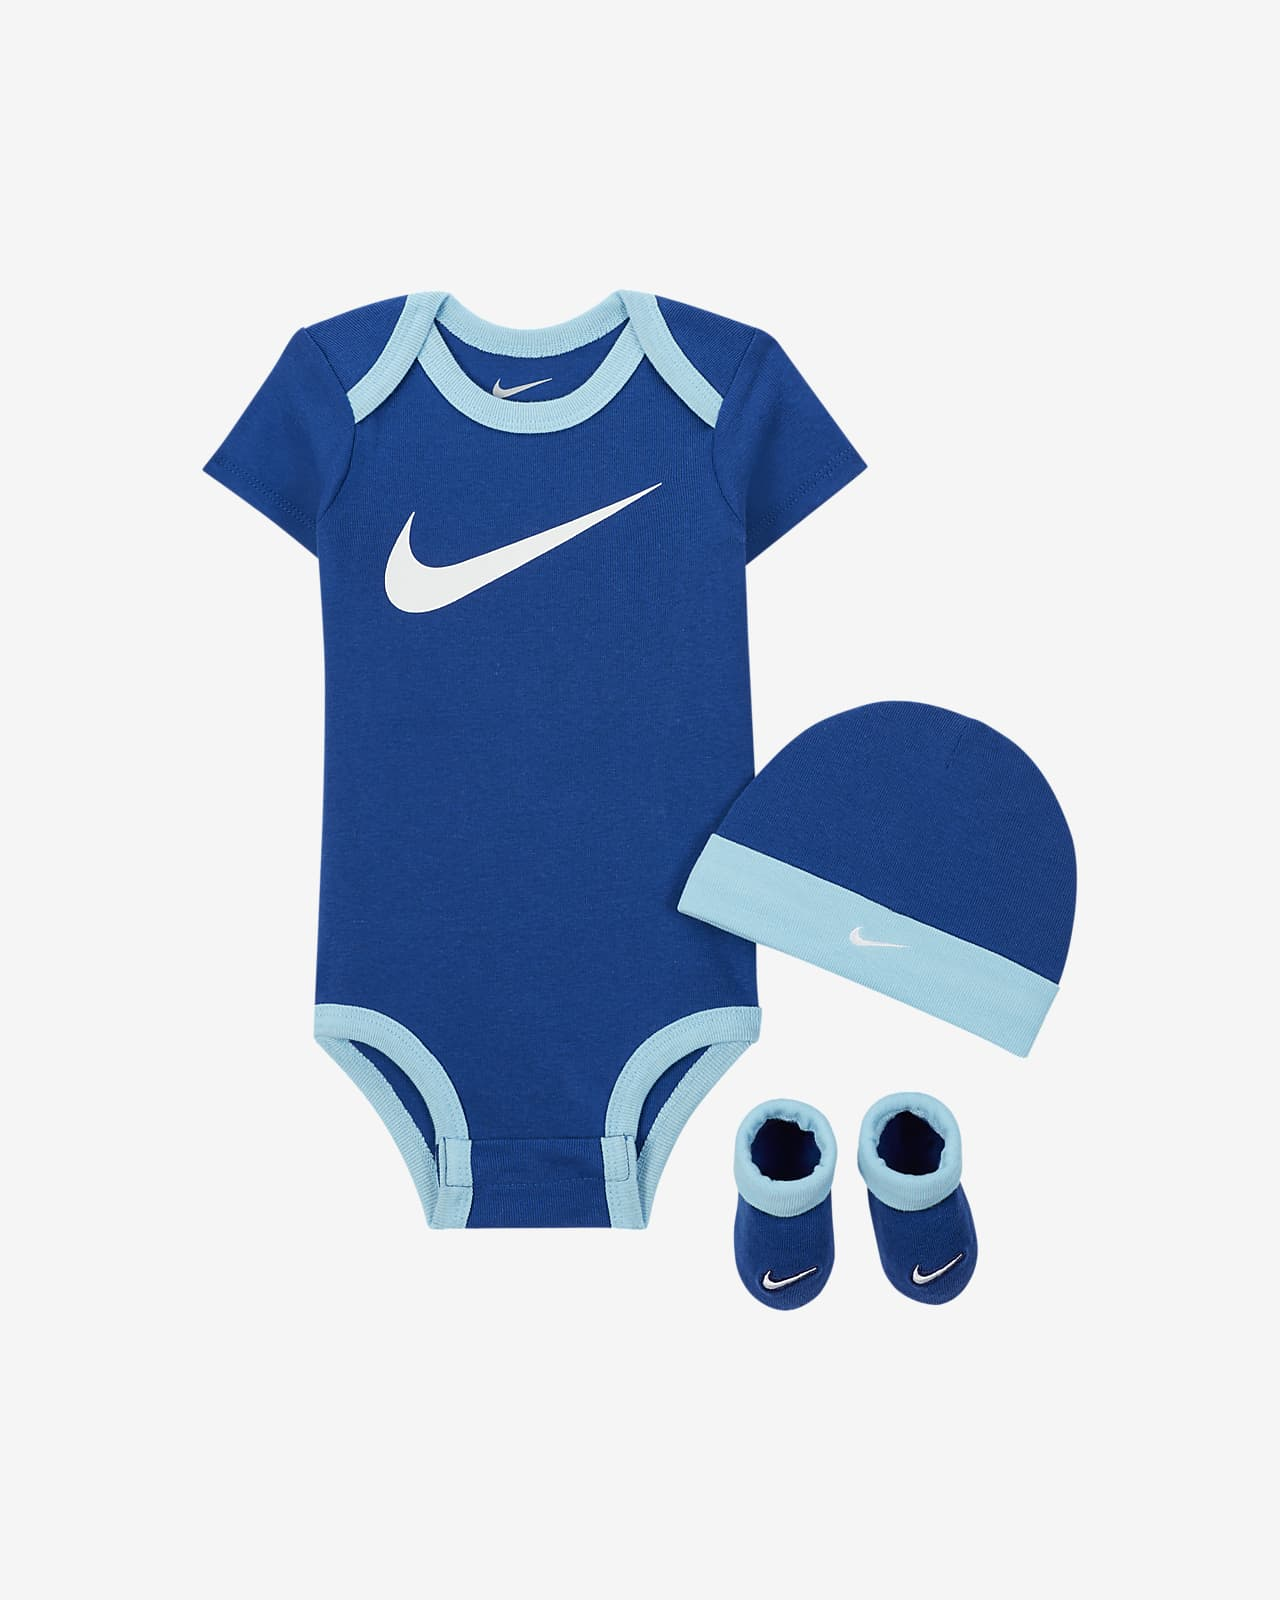 Nike Baby Bib and Booties Set